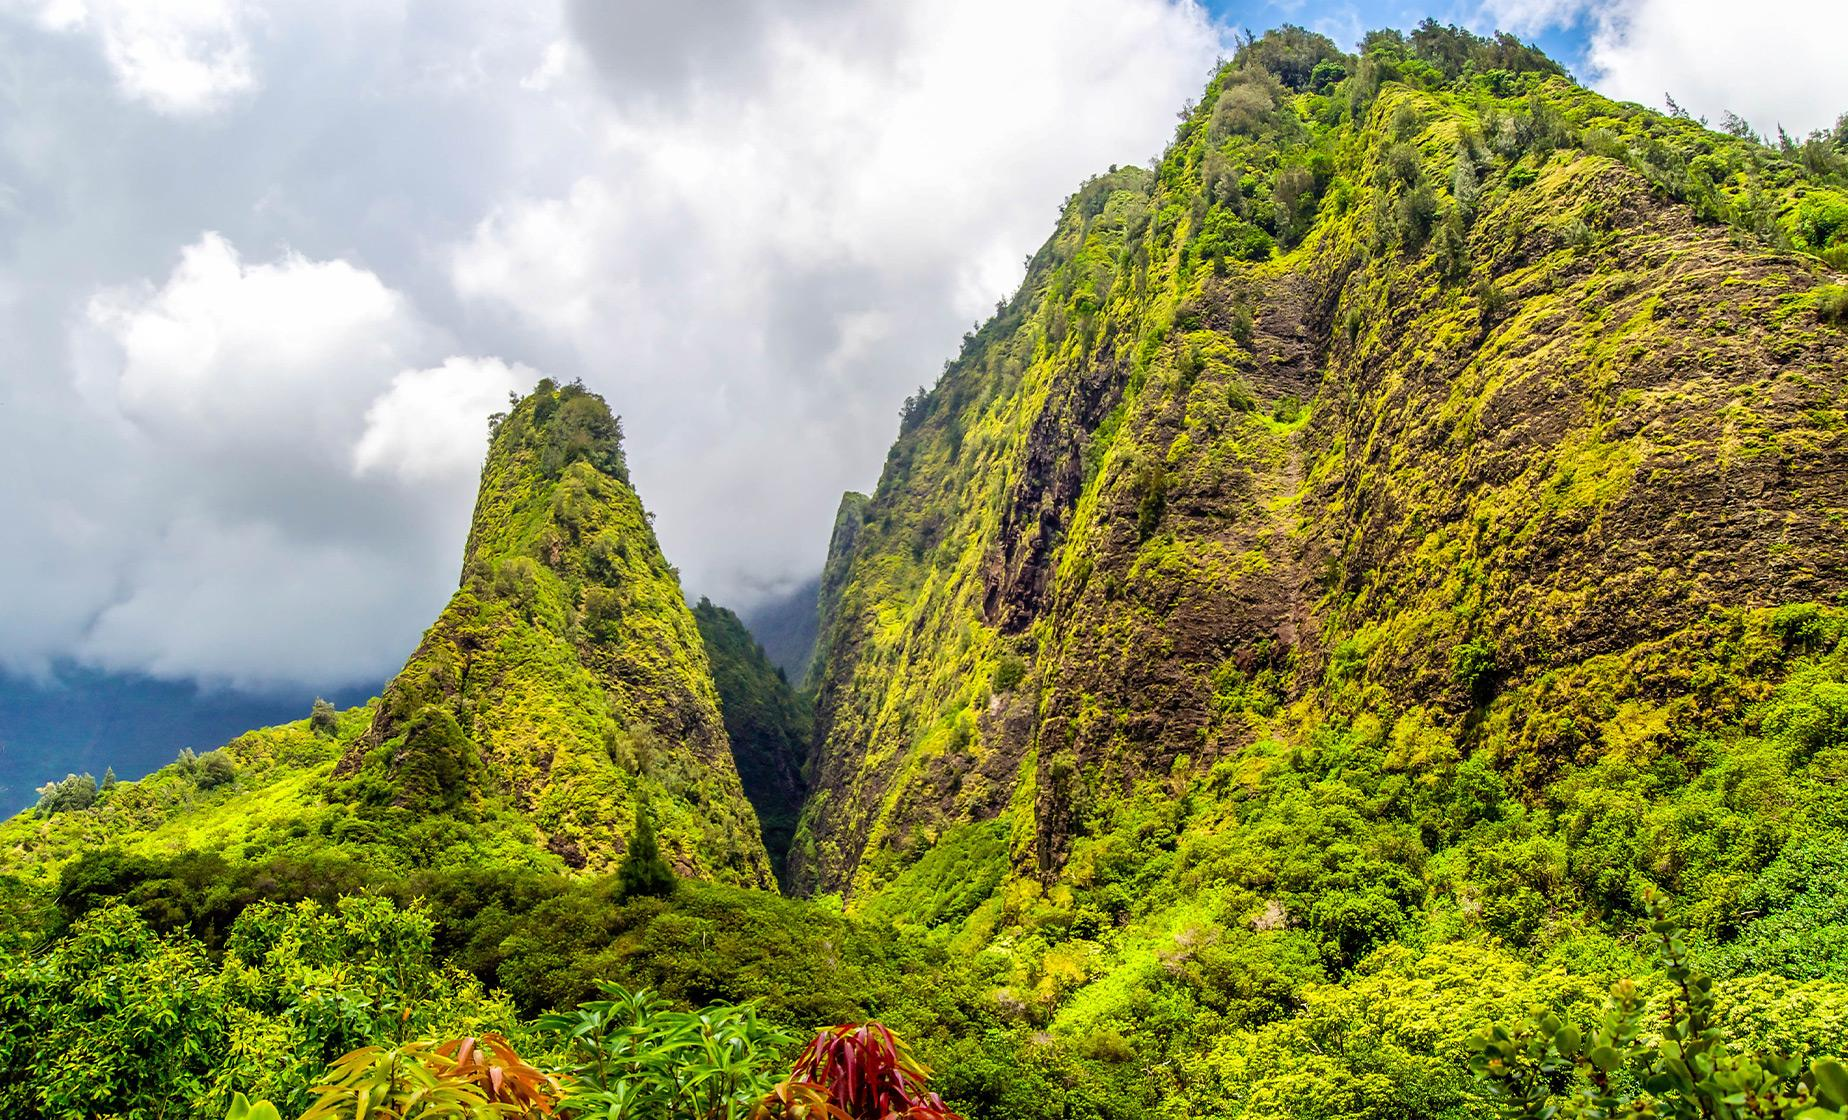 Iao Valley and Maui Tropical Tram